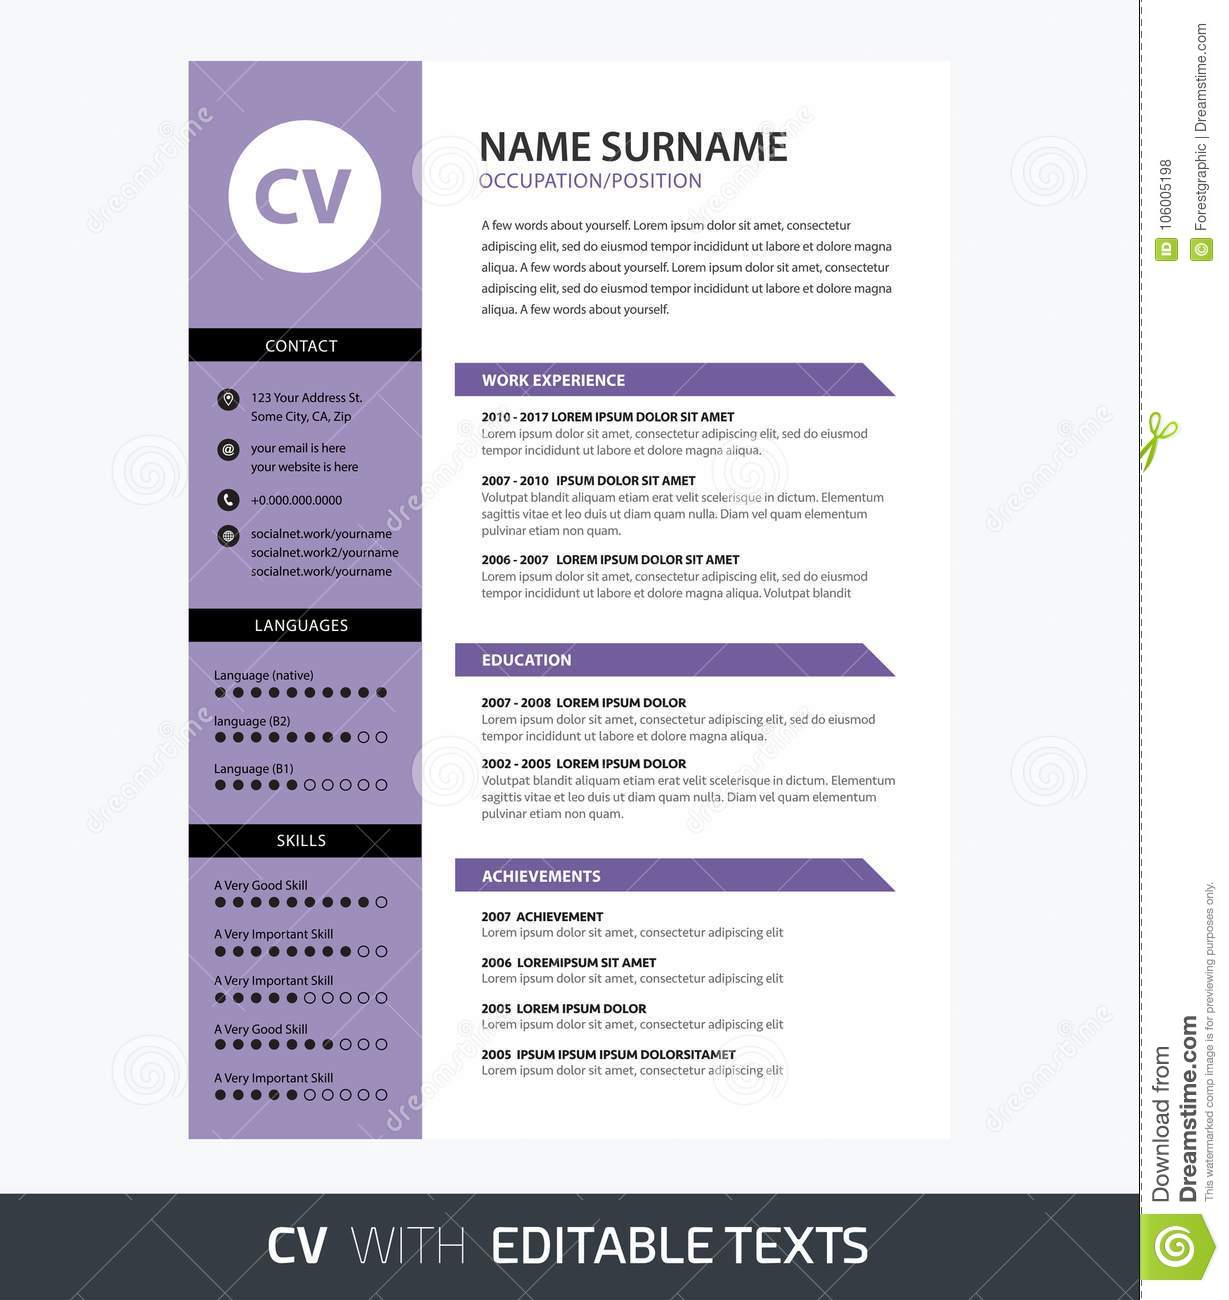 minimalist cv template ultra violet color